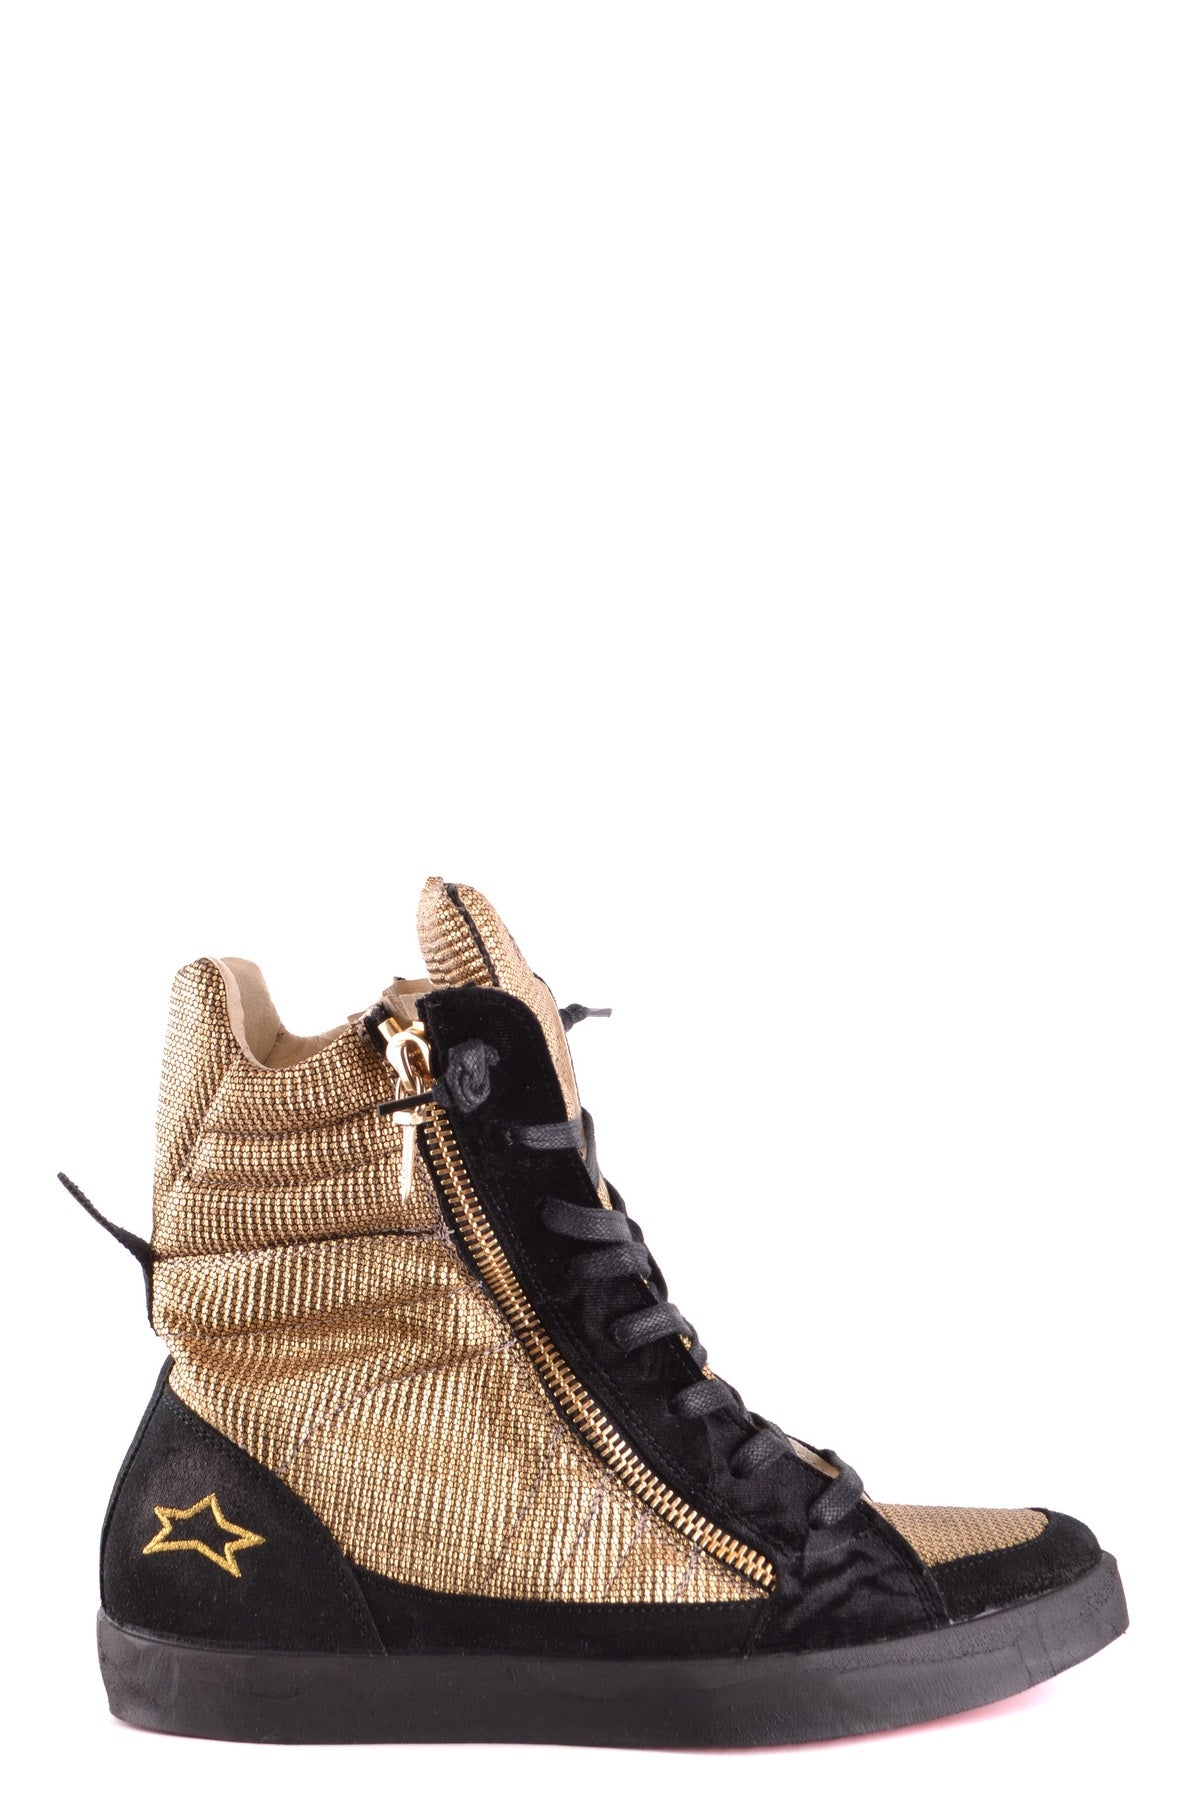 Shoes Ishikawa-Sports & Entertainment - Sneakers-38-black-Product Details Year: 2017Composition: Chamois 40%, Leather 60%Size: EuMade In: ItalySeason: Spring / SummerType Of Accessory: ShoesMain Color: GoldTerms: New With LabelGender: Woman-Keyomi-Sook